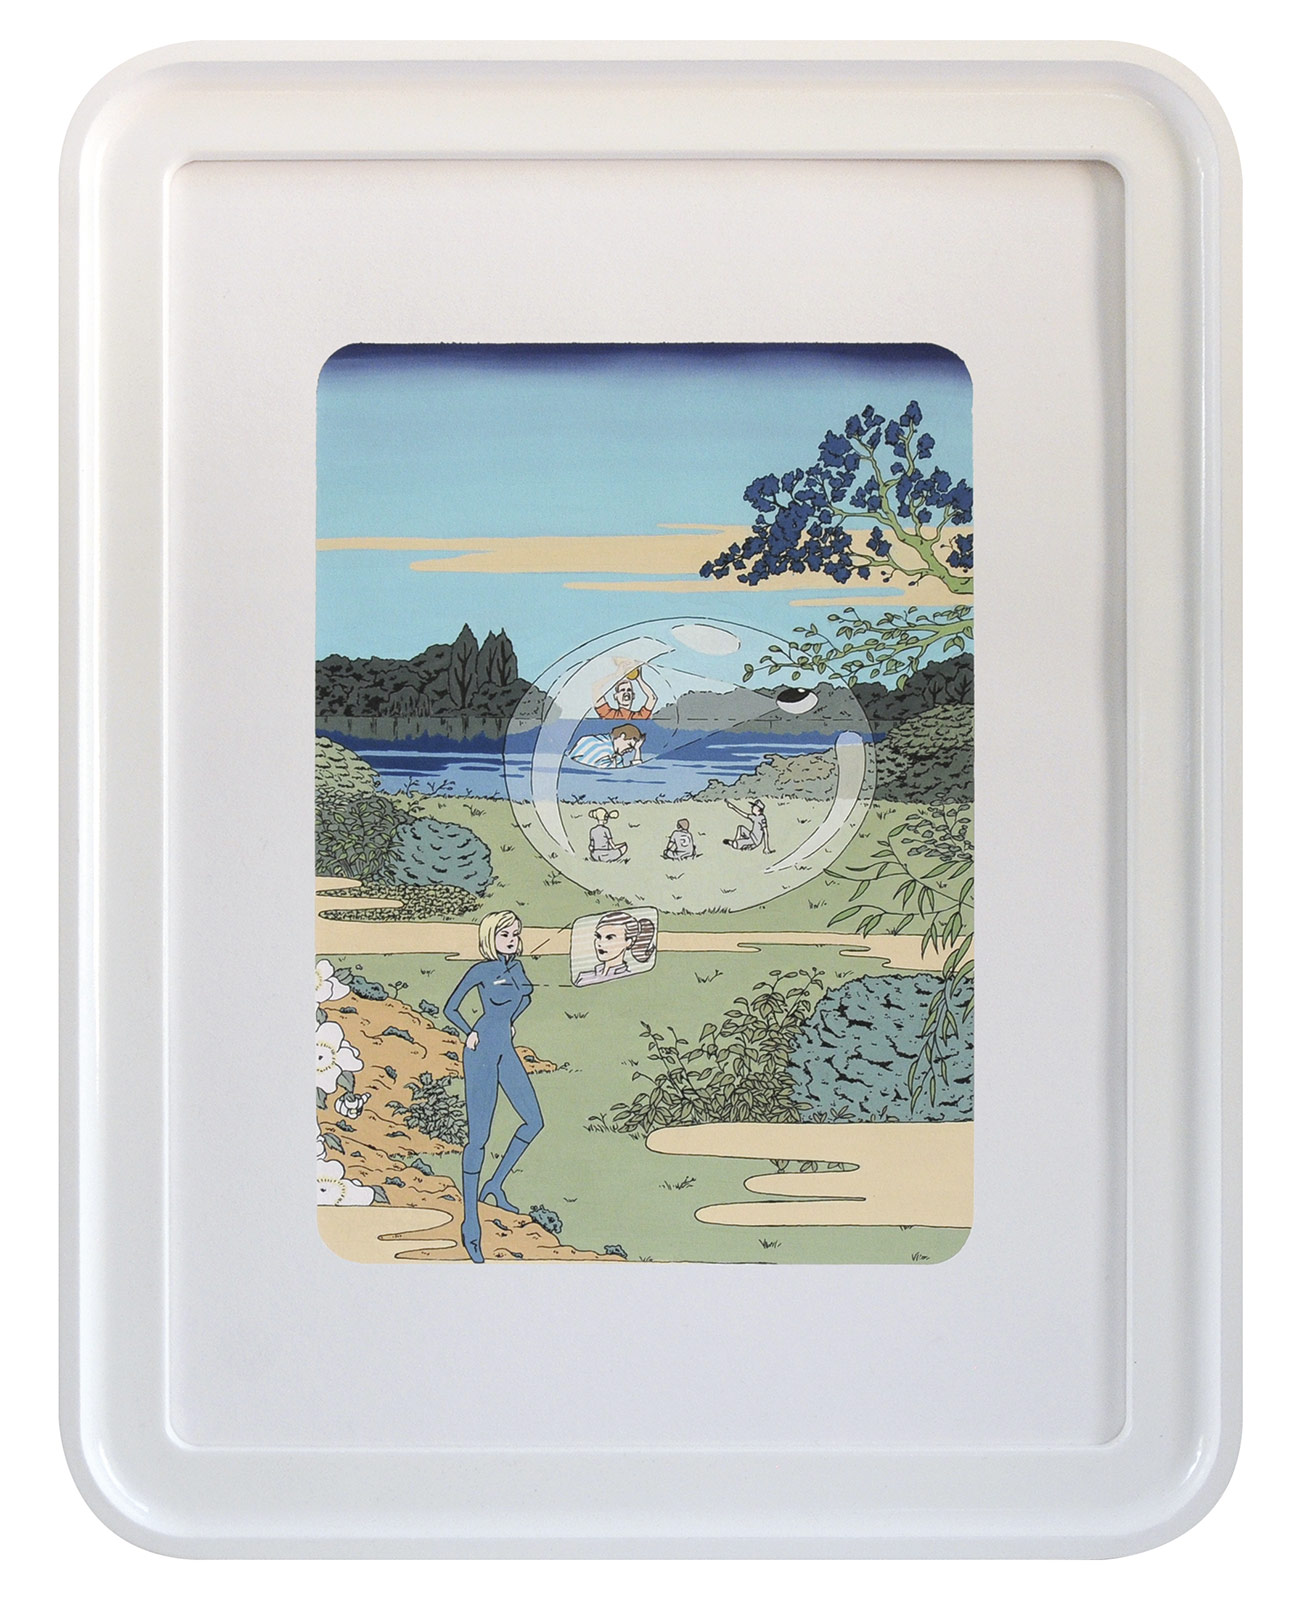 «The Hydrogen Island, Utopian-entropic prints», 2012, Gouache and ink on paper, 40 x 30 cm.